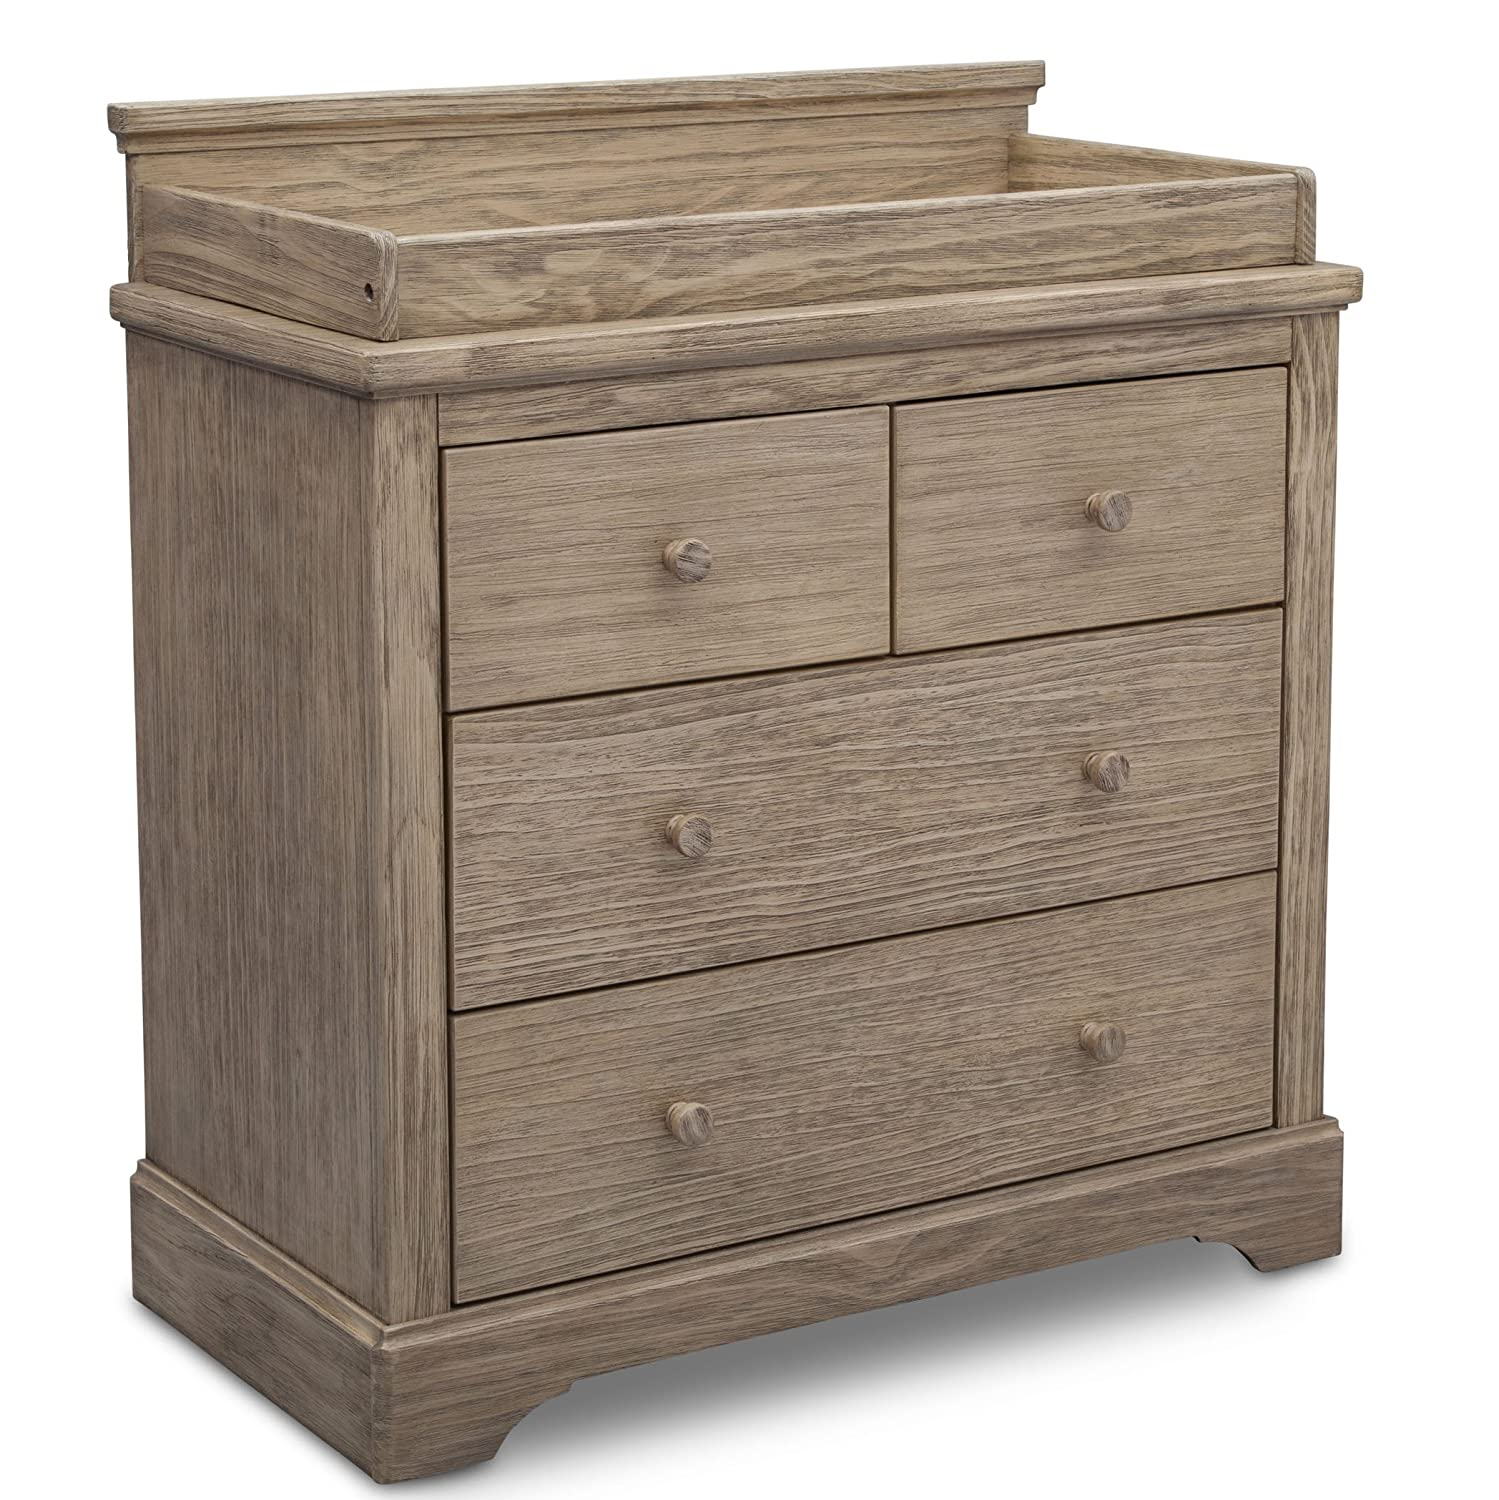 Simmons Kids SlumberTime Paloma 4 Drawer Dresser with Changing Top, Rustic Driftwood Delta Baby Dropship 328040-112